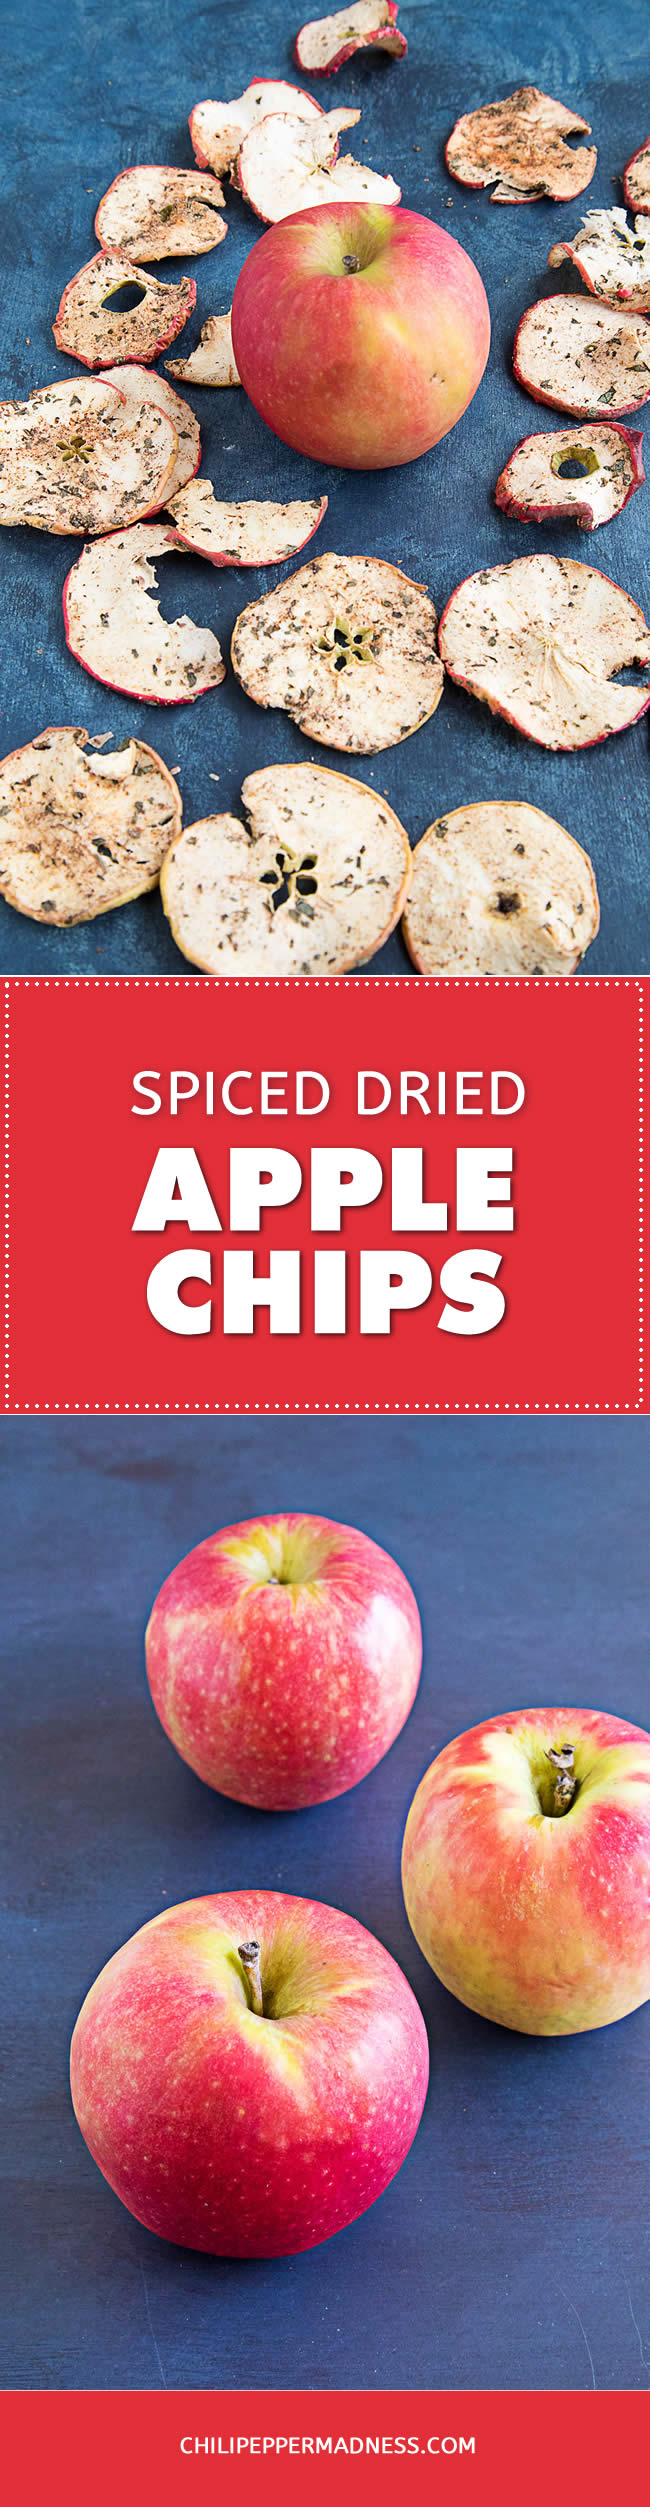 Spiced Dried Apple Chips - Recipe